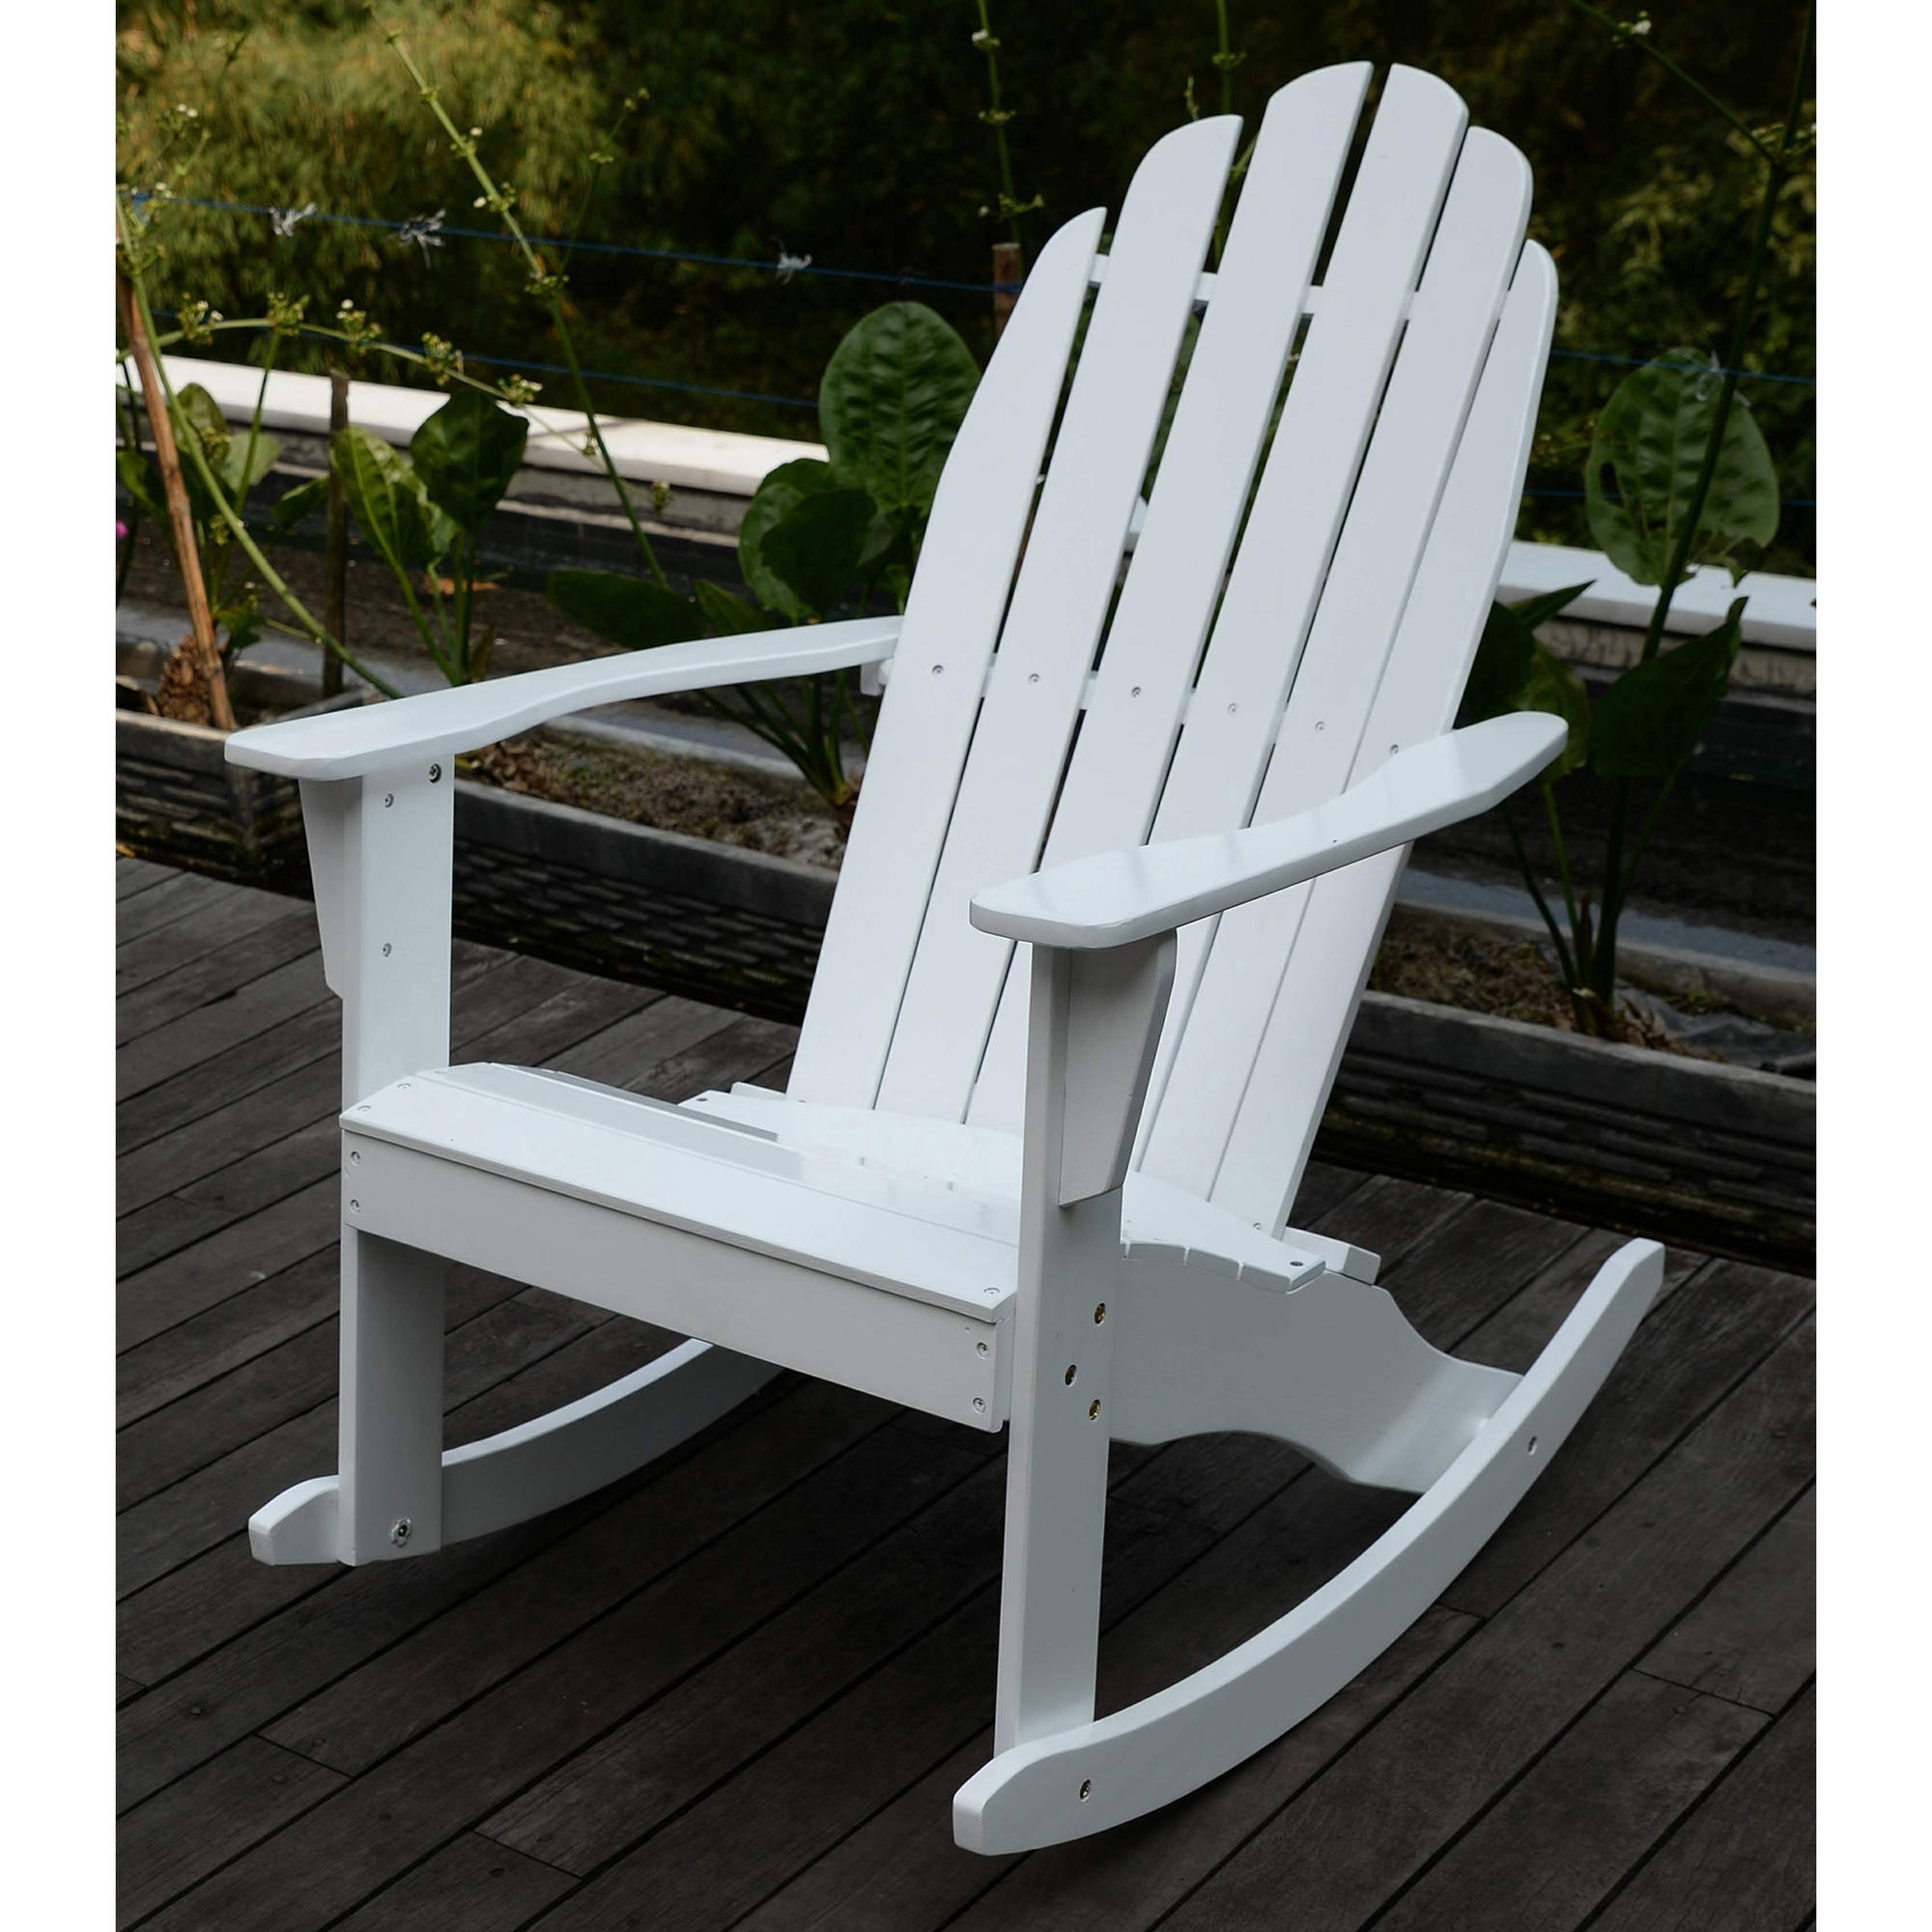 Adirondack Rocking Chair, White – Walmart Throughout Famous Walmart Rocking Chairs (View 1 of 15)